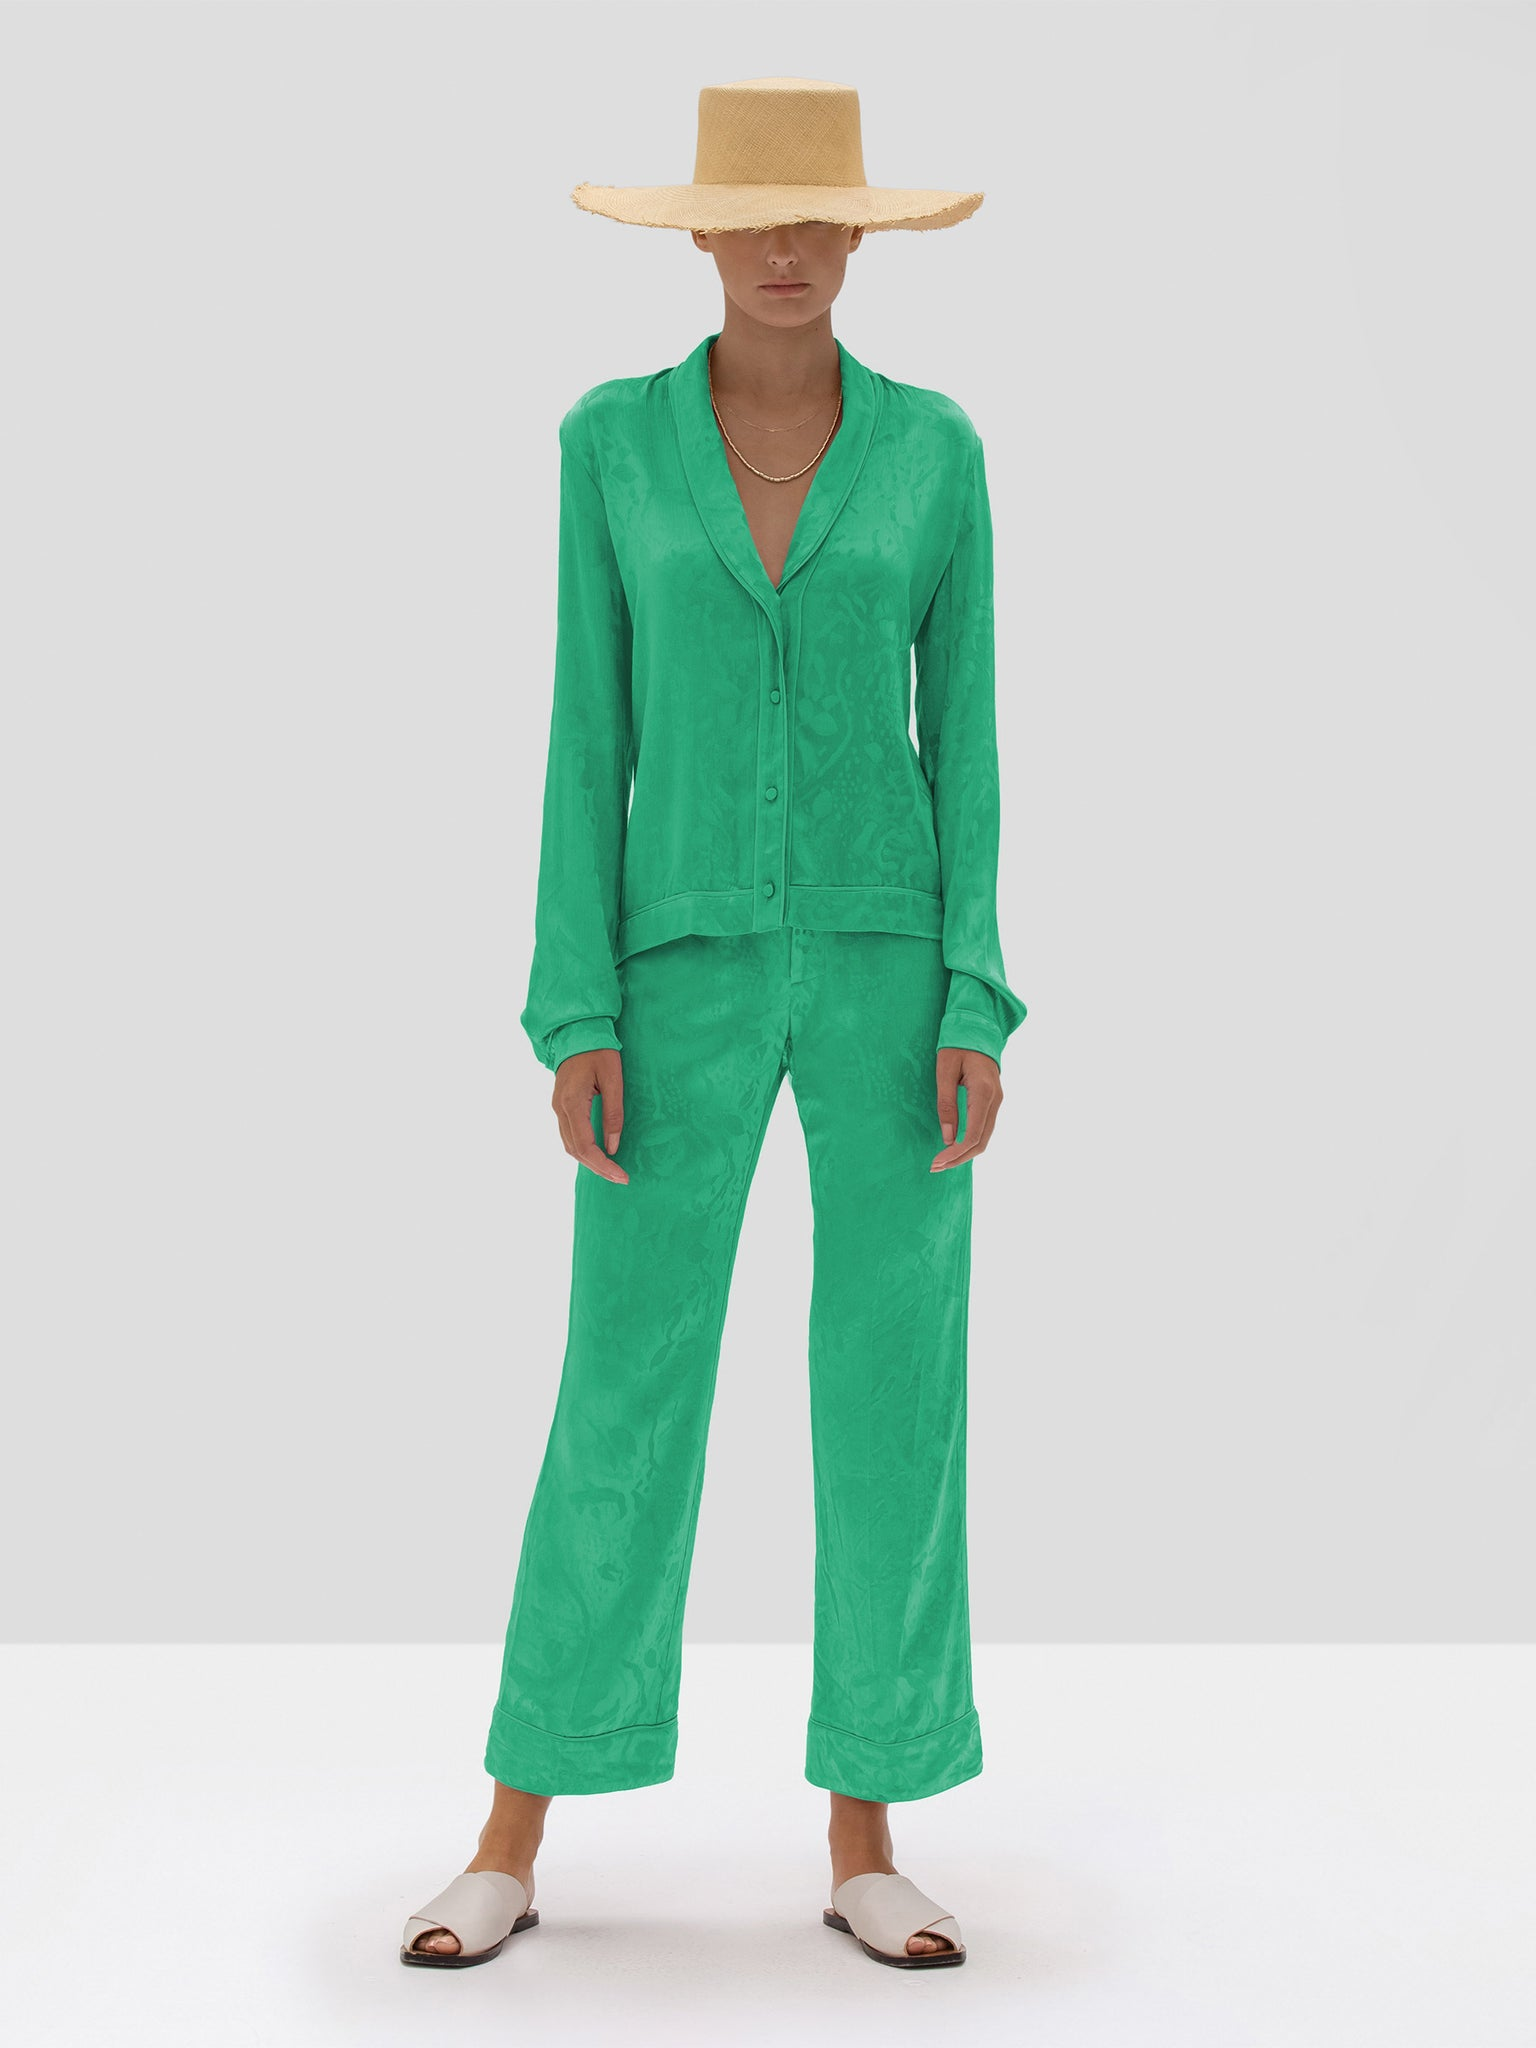 The Justyn Pant in Emerald Green from the Spring Summer 2020